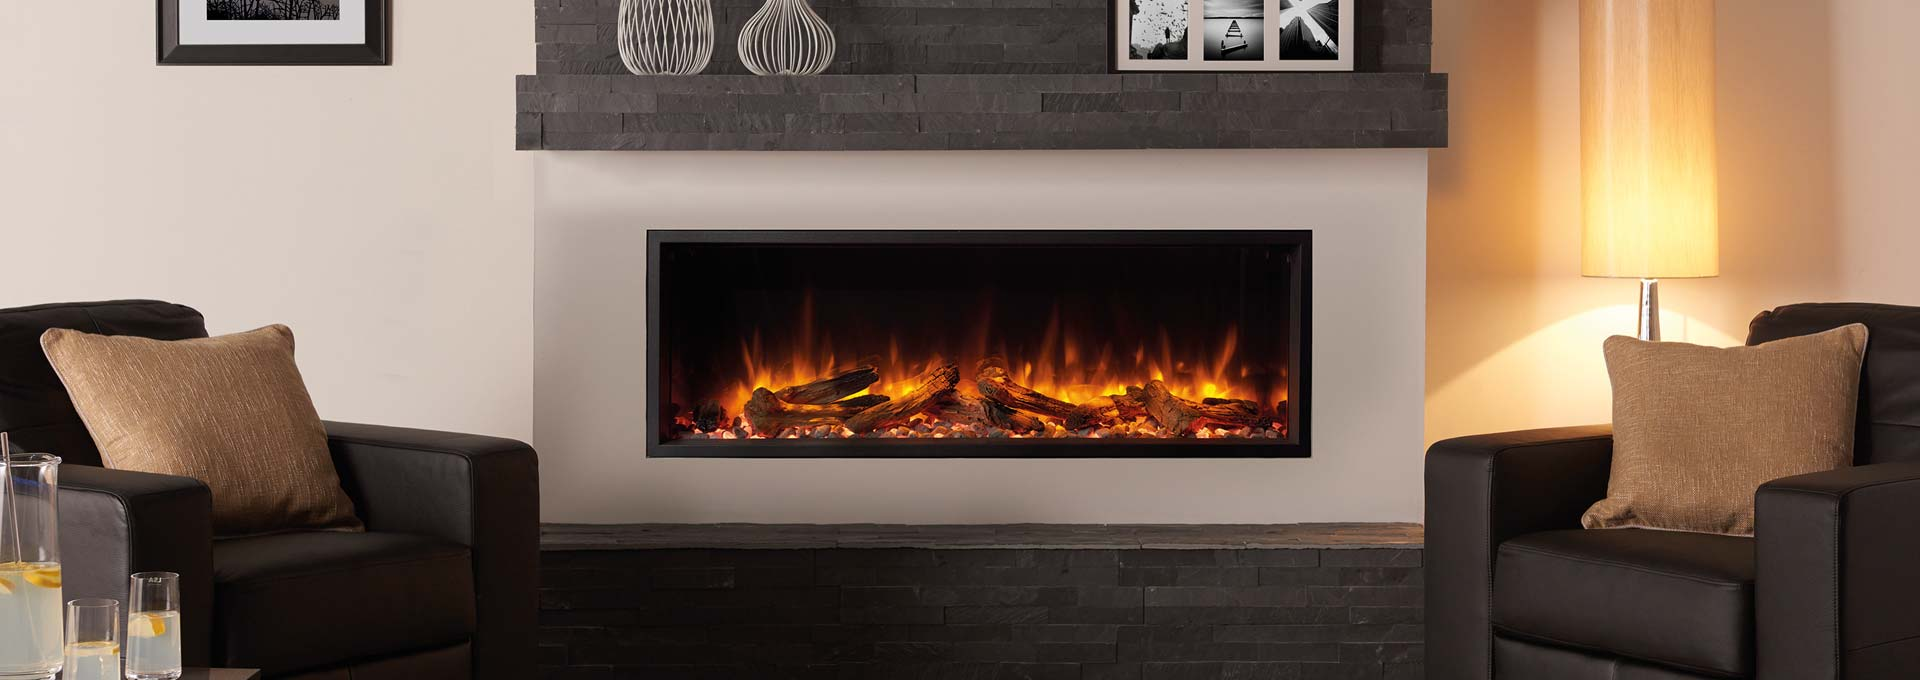 Fantastic Regency Skope E135 Electric Fireplace Download Free Architecture Designs Grimeyleaguecom